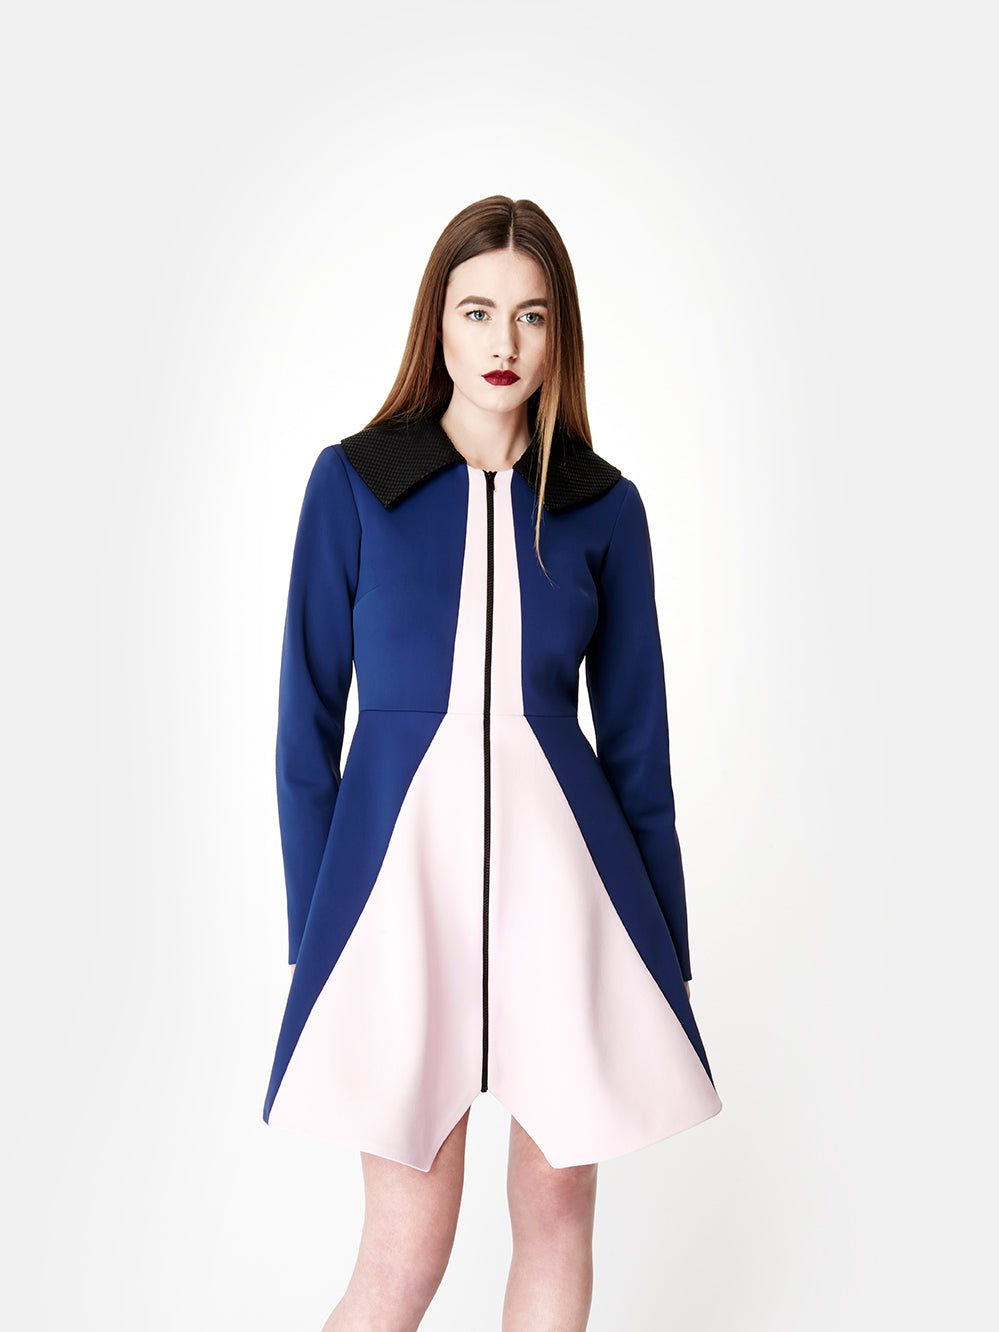 SARAH BOND Bo Bardi Coat Navy/Pink